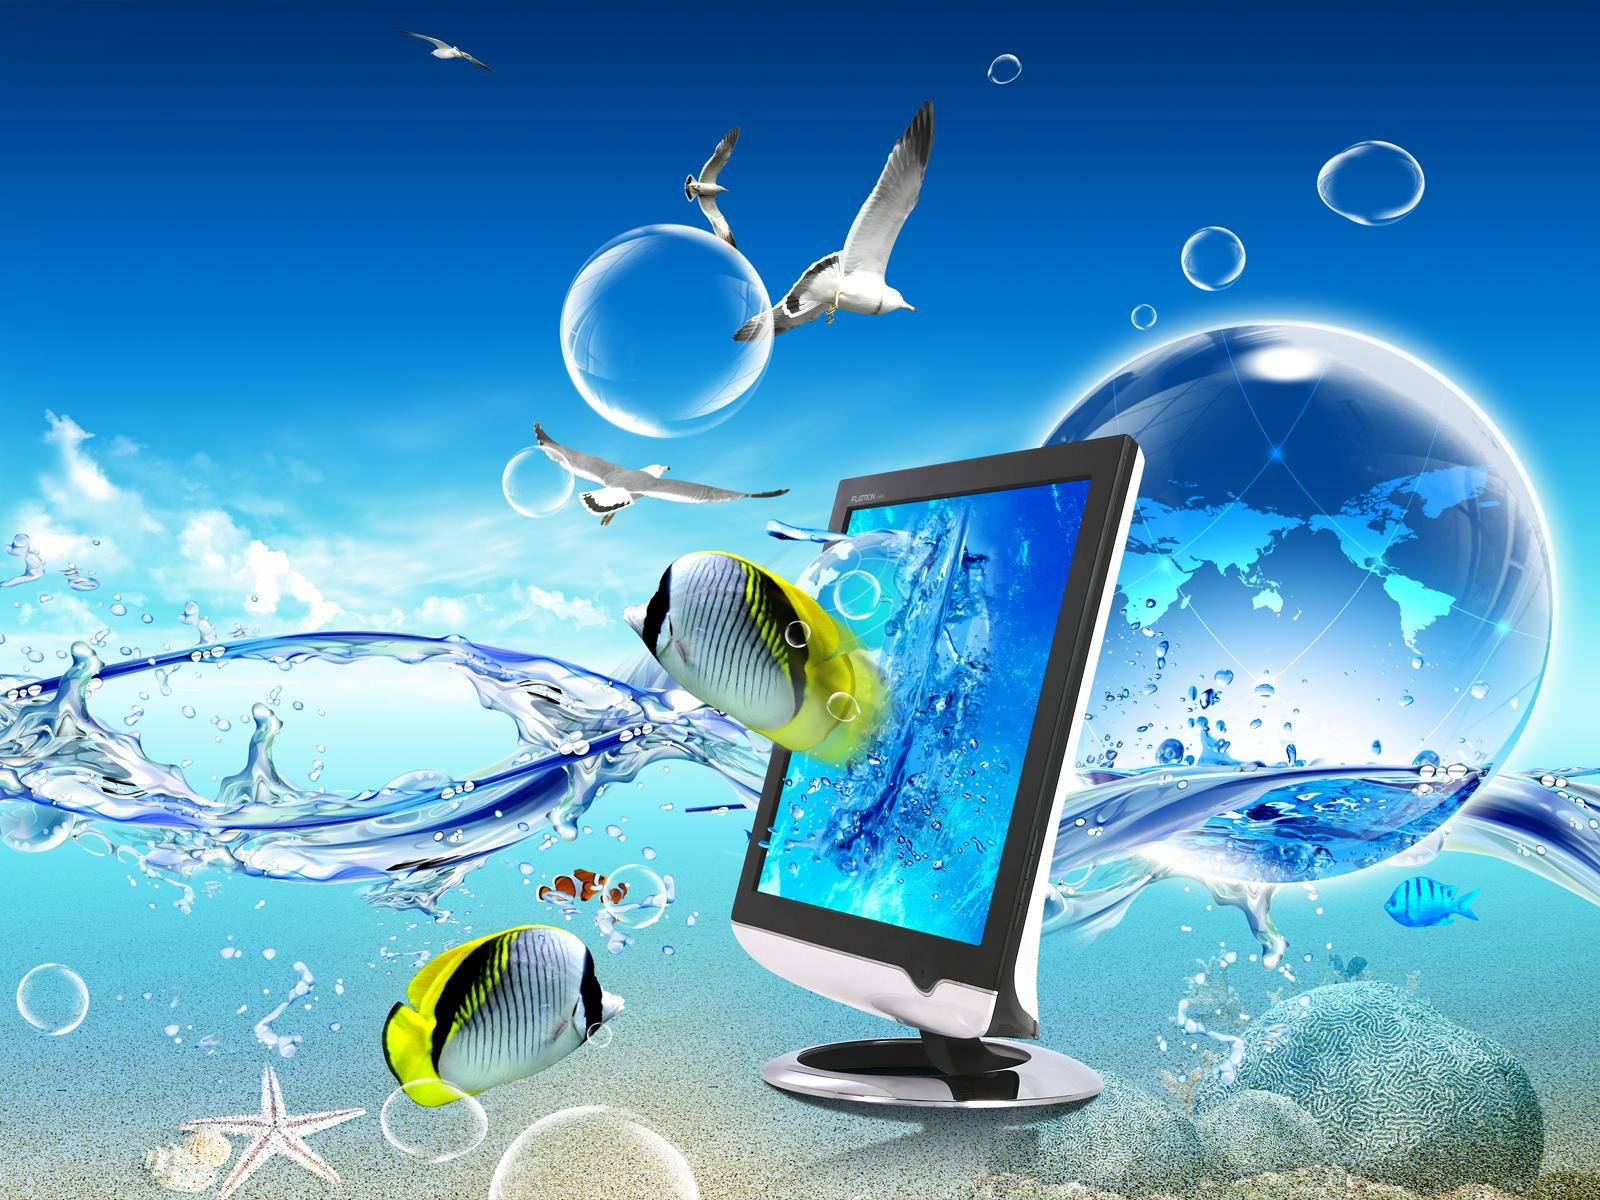 Live wallpapers for pc - HD Beautiful Desktop Wallpapers